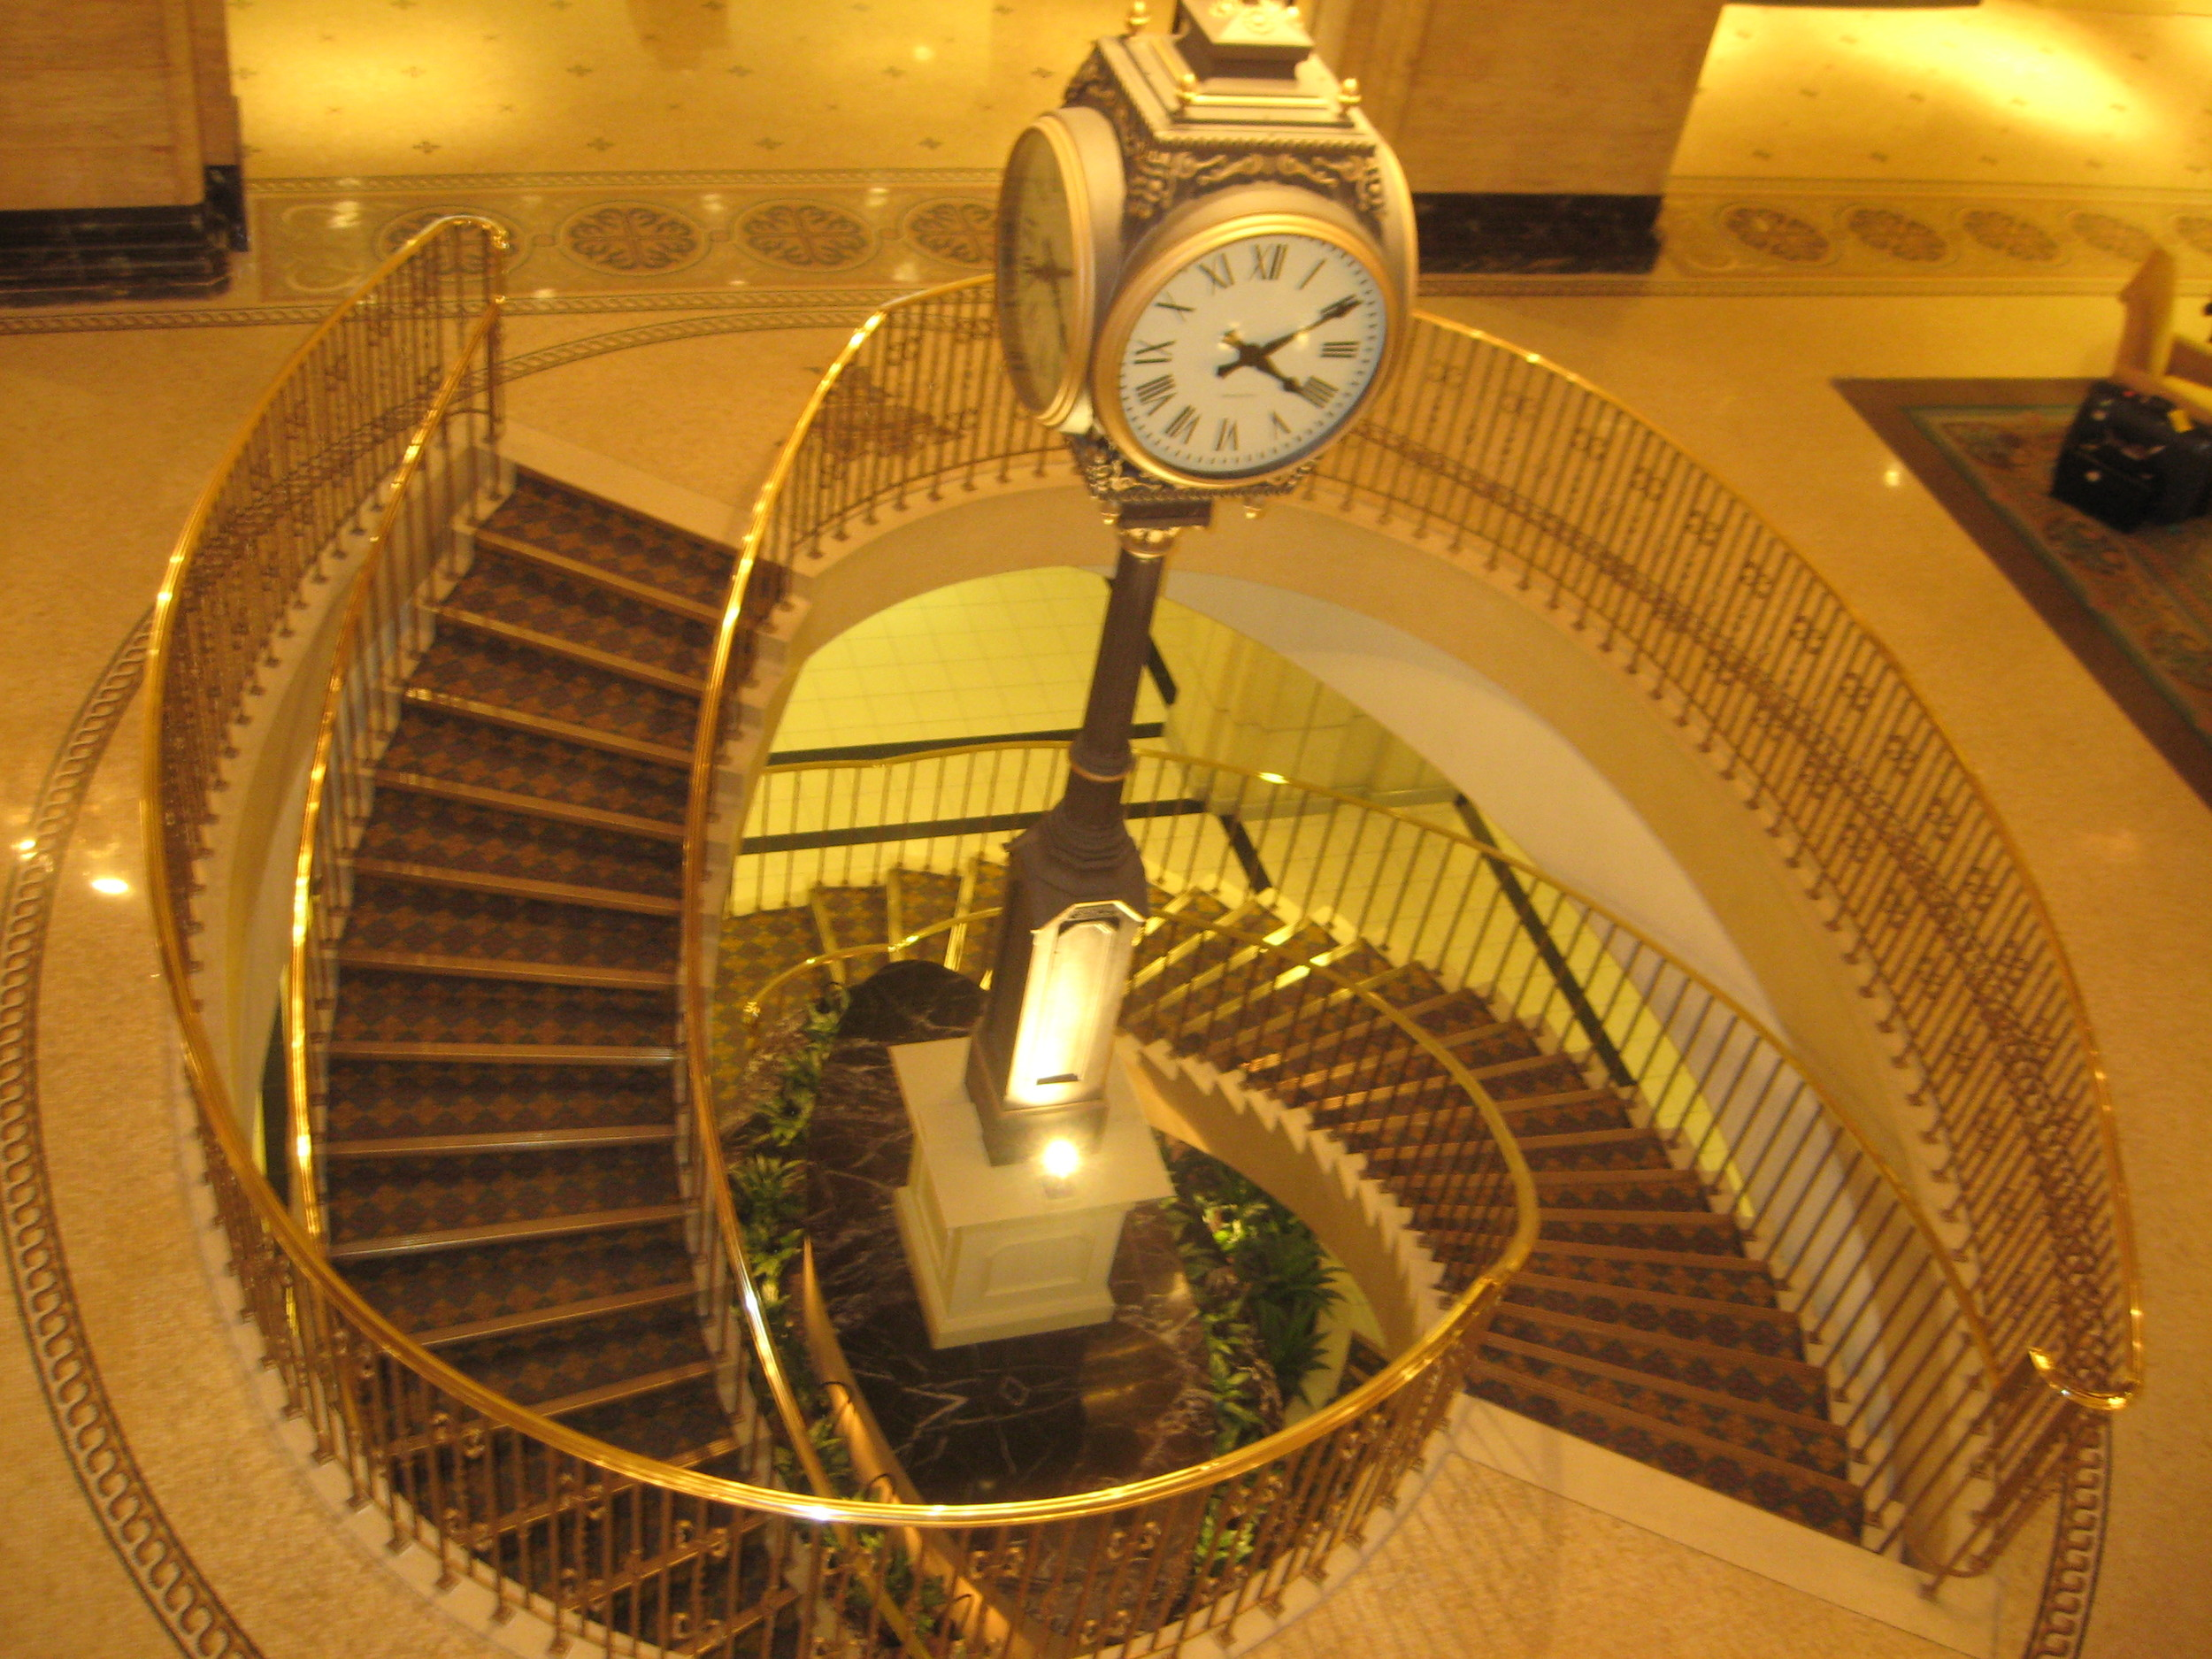 The Royal York Hotel Spiral Staircase